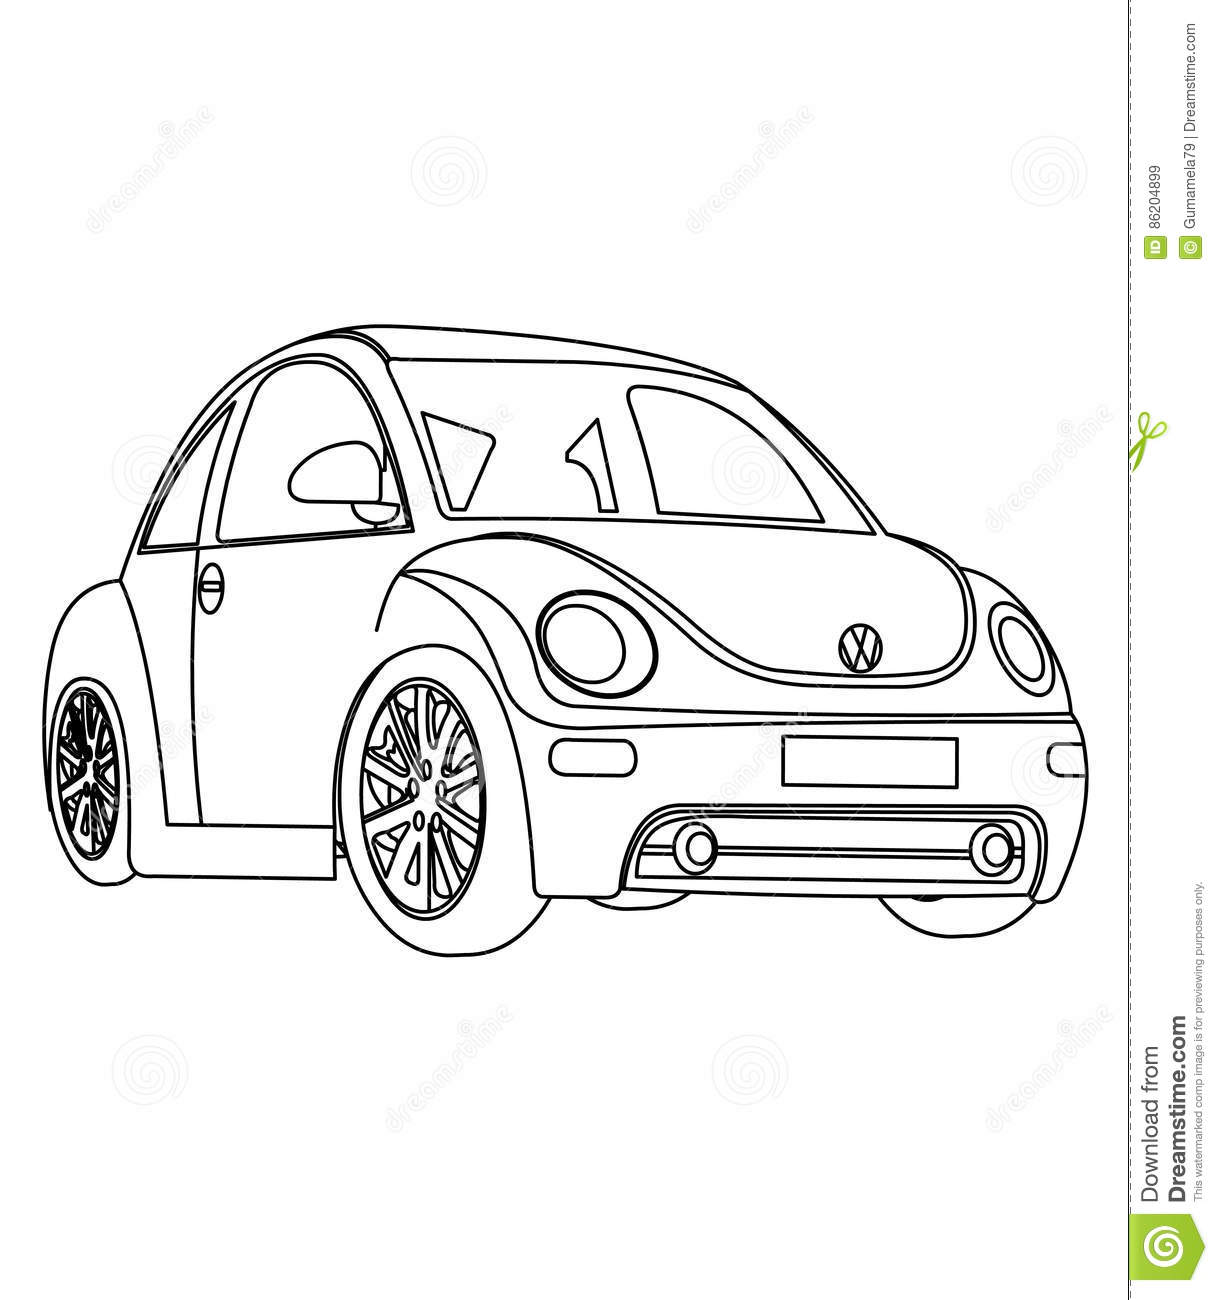 little cars coloring pages - photo#6